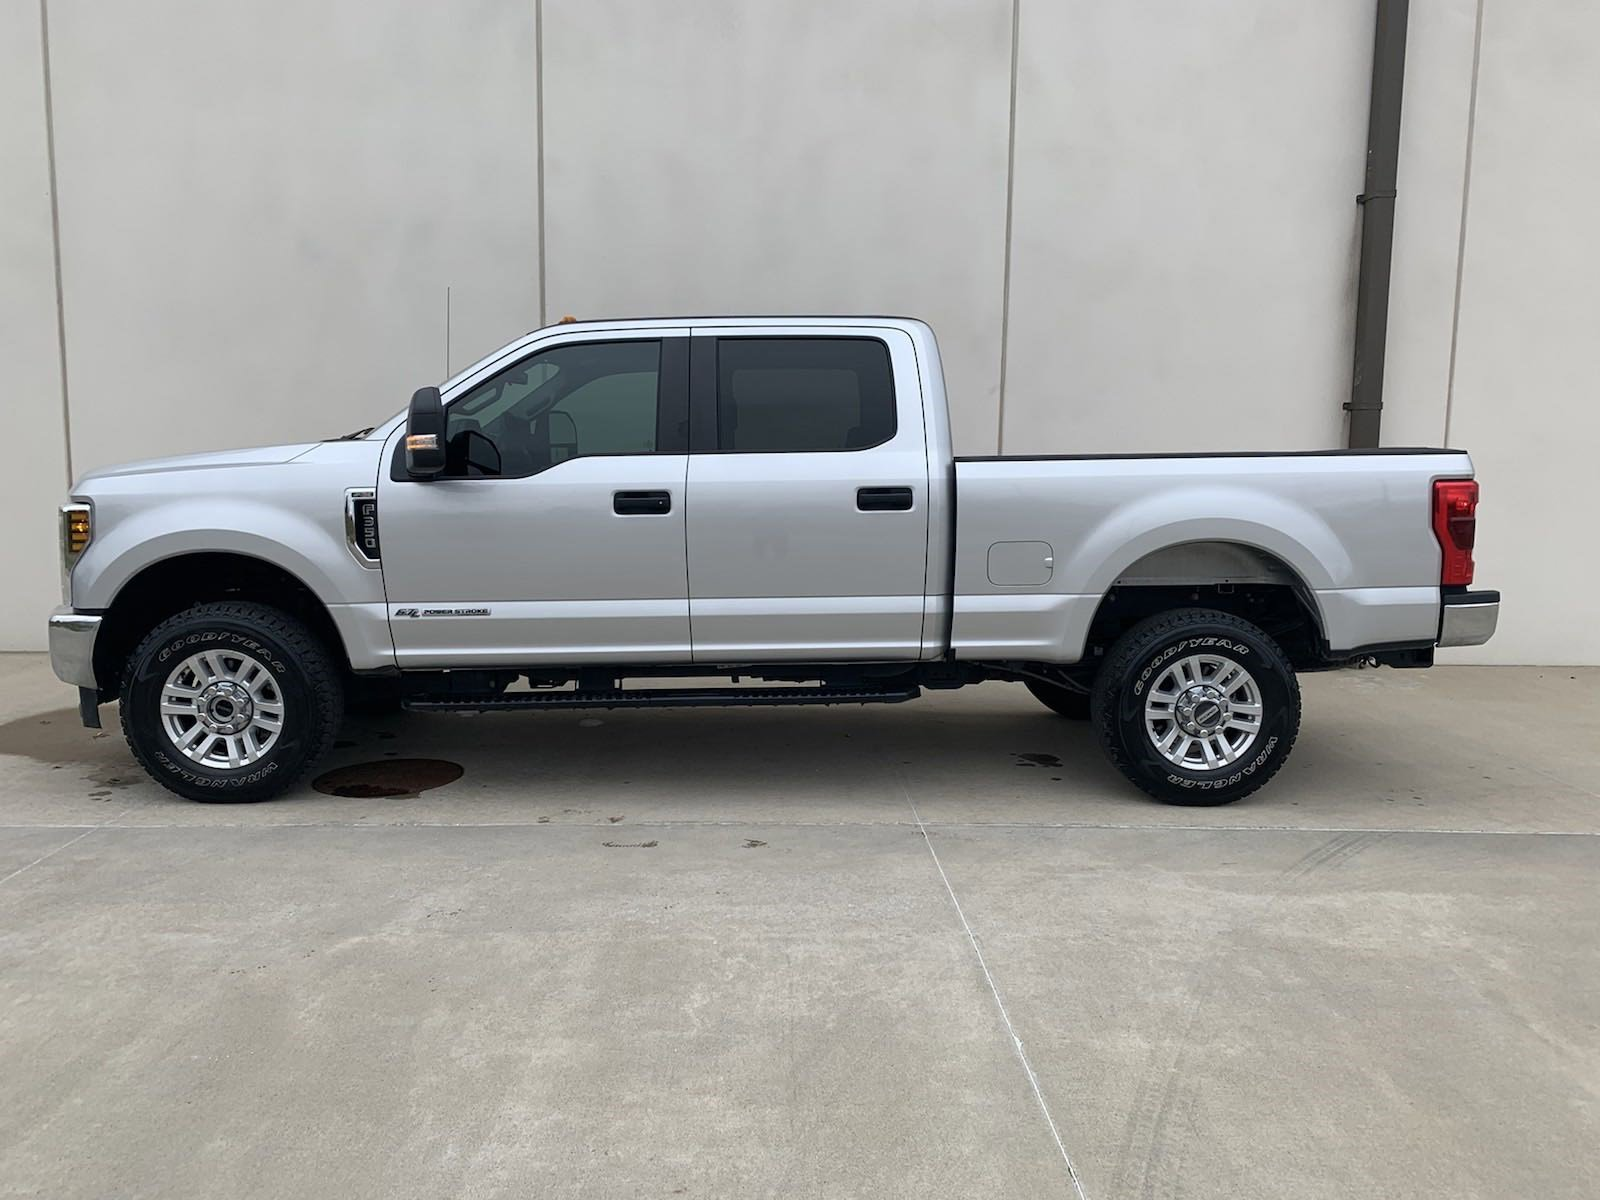 Used 2019 Ford Super Duty F-350 Srw XL Crew Cab Pickup for sale in St Joseph MO